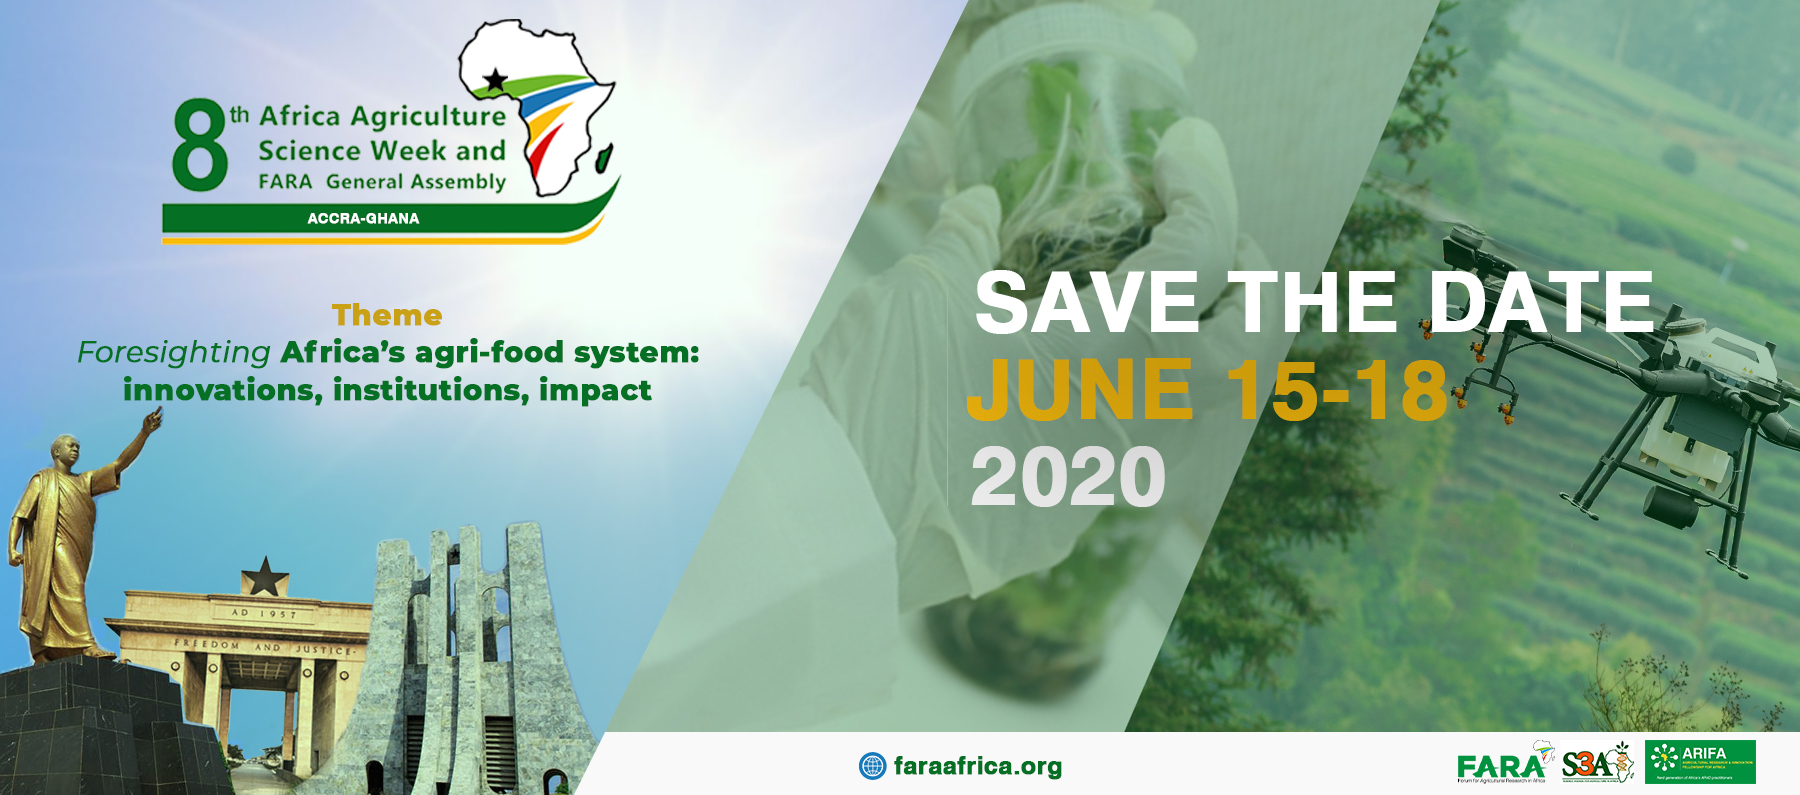 FARA Announces 8th Africa Agriculture Science Week (AASW) and FARA General Assembly